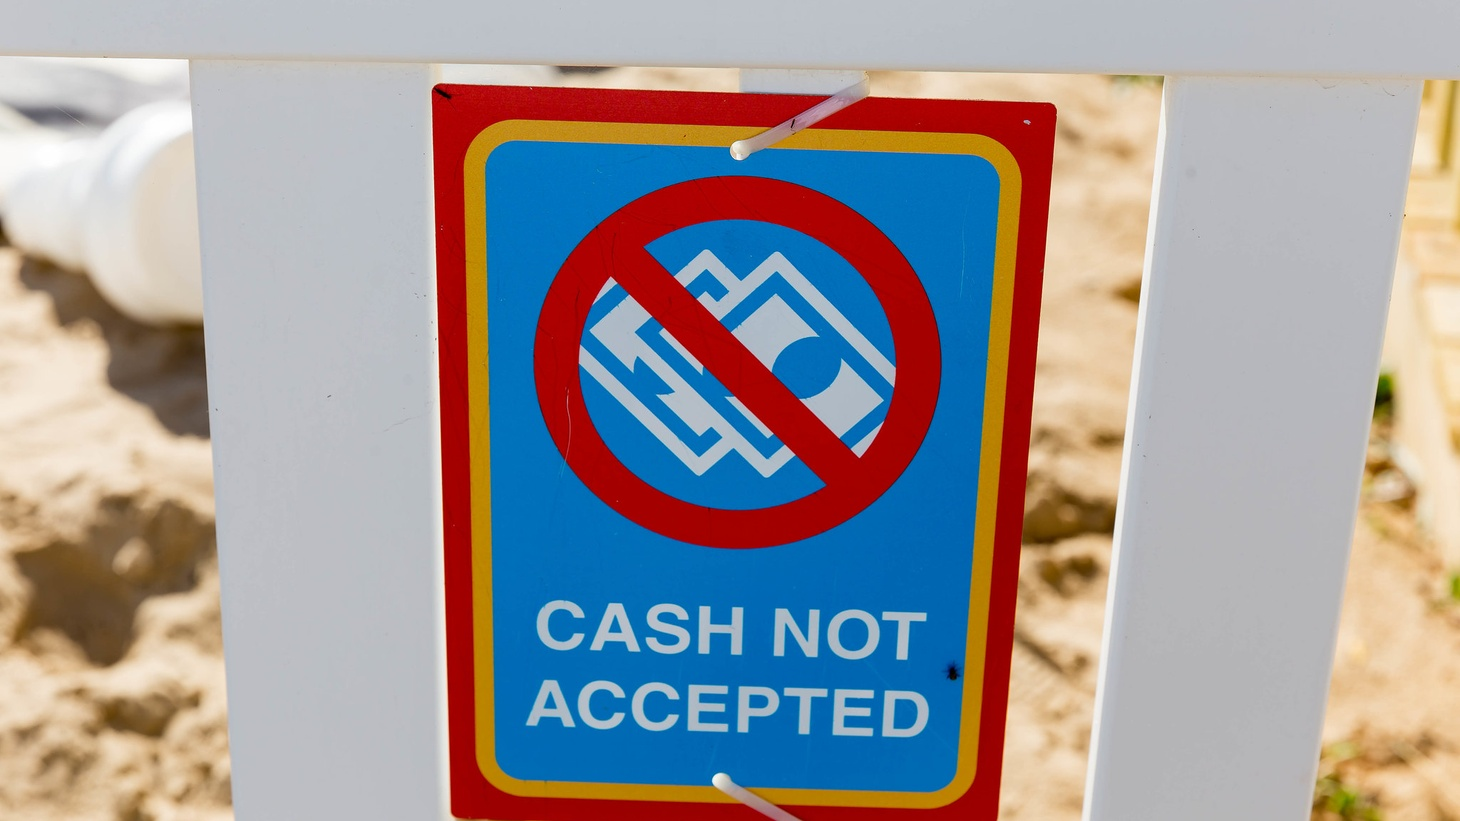 """Cash not accepted"" sign."